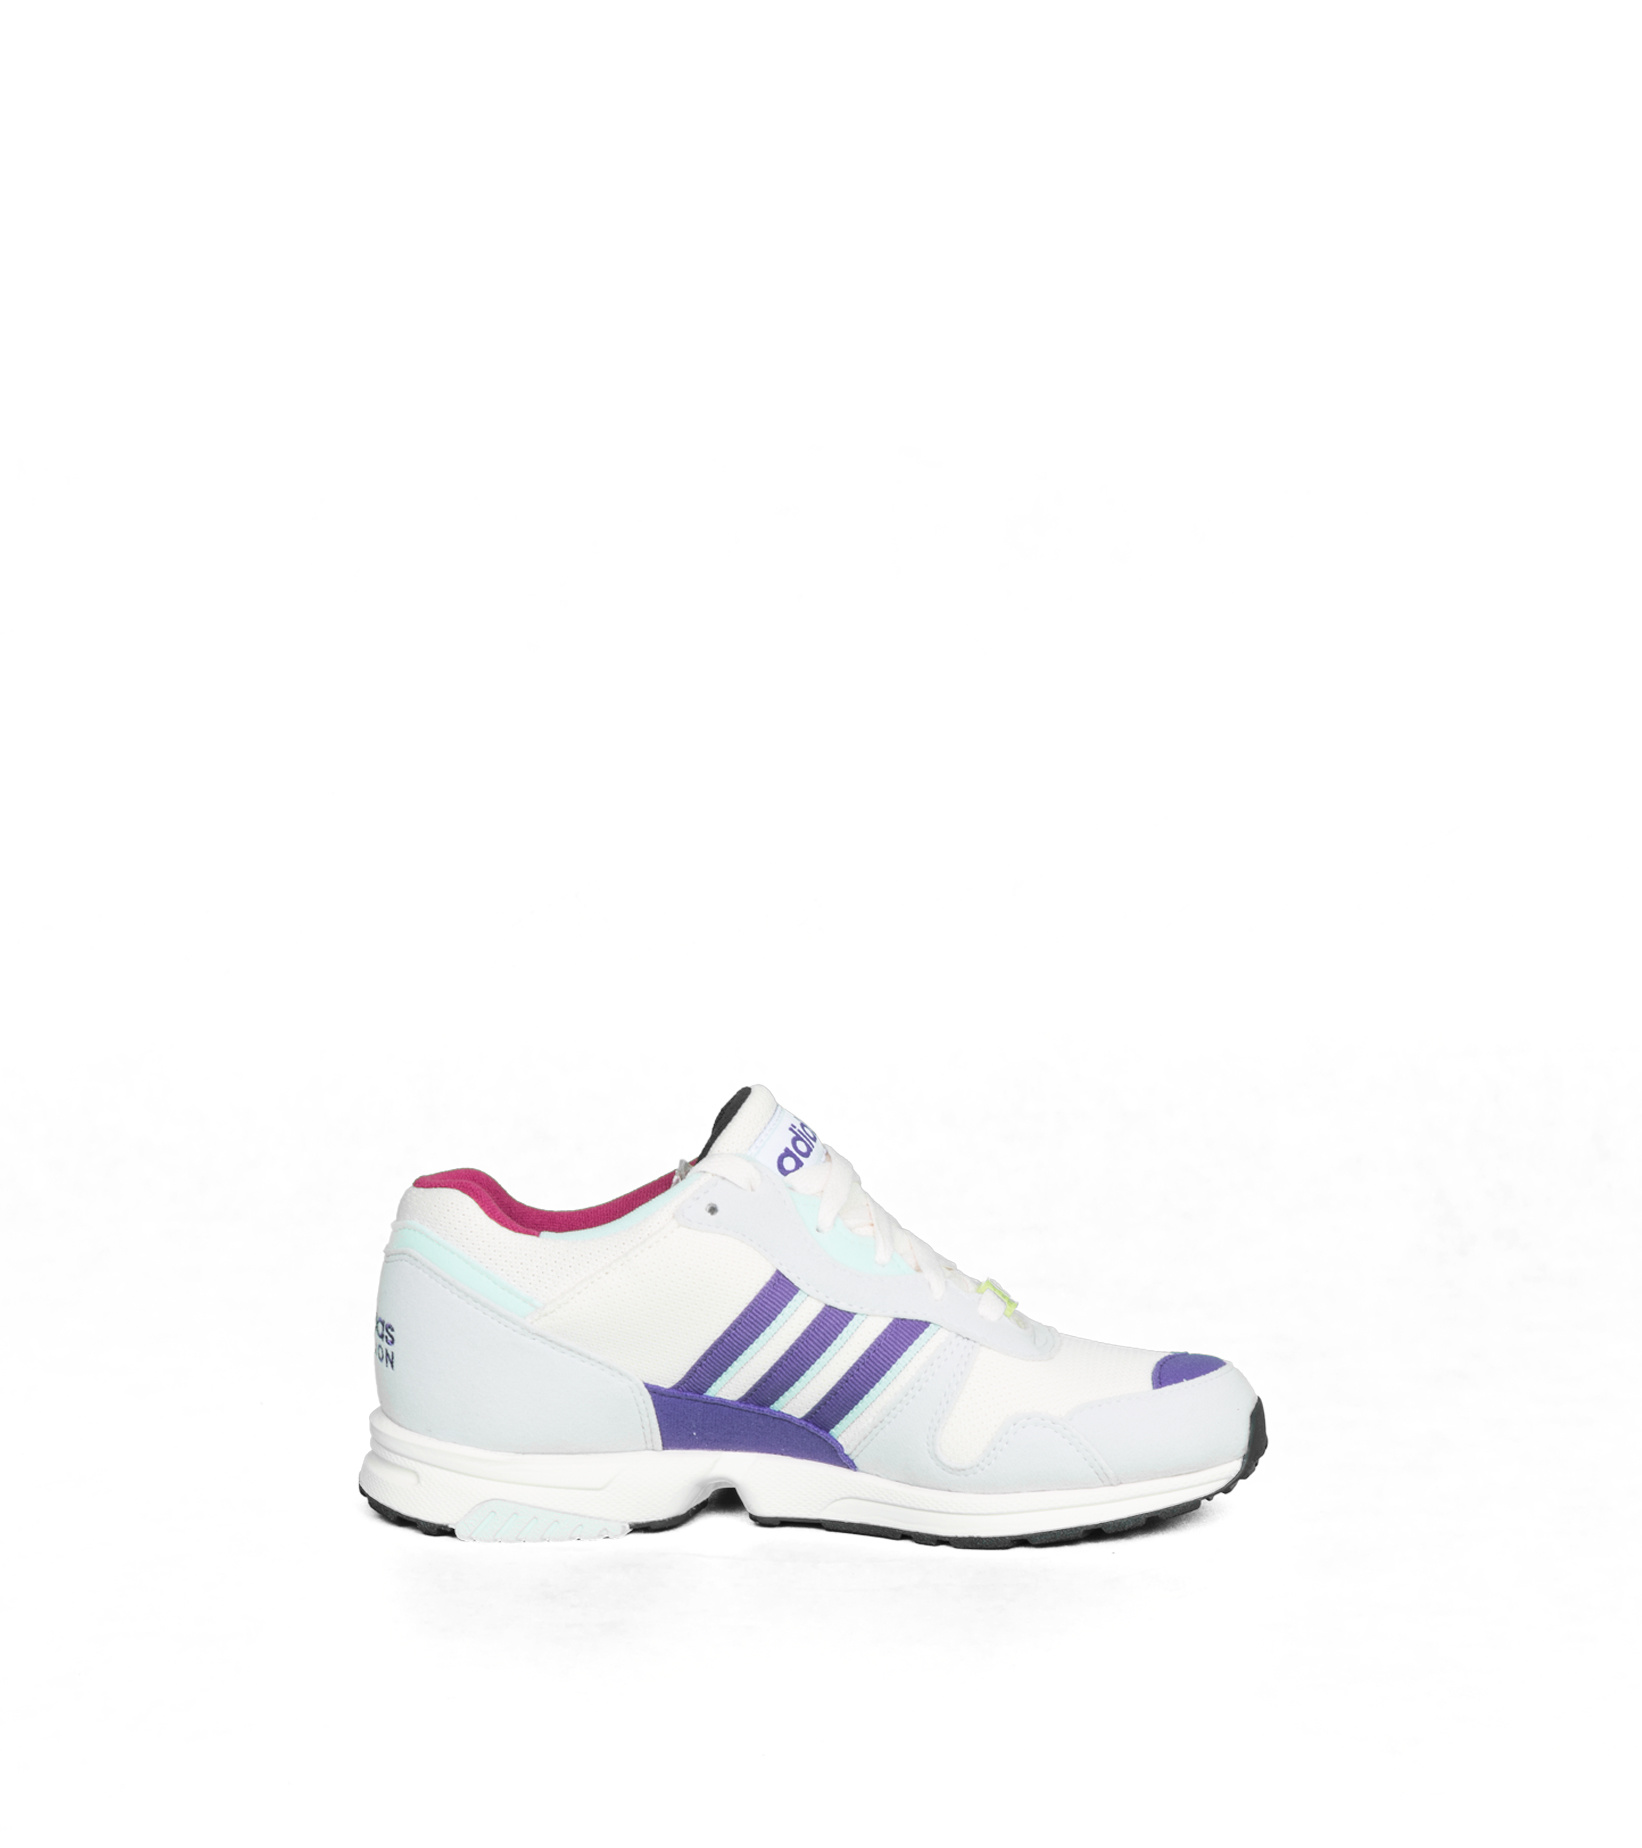 "Spezial Hrmny _NWRDR ""White/Pink/Mint""-4"